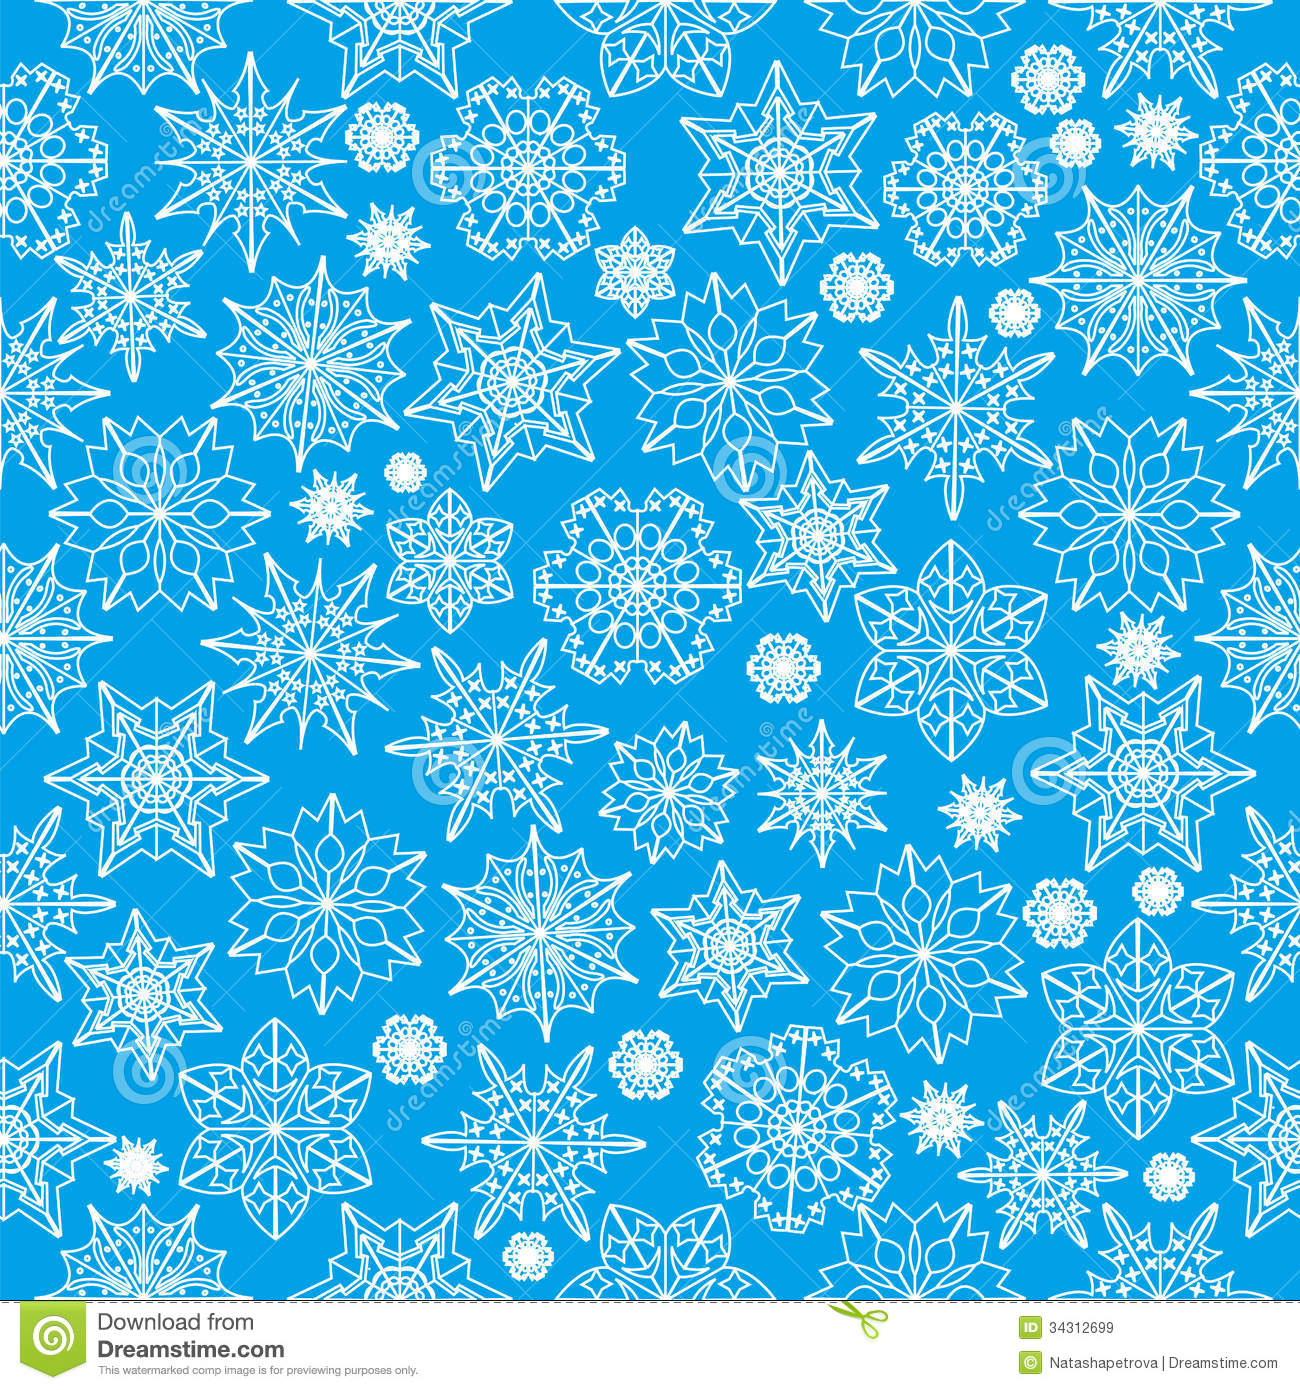 Free Paper Snowflake Patterns and Images